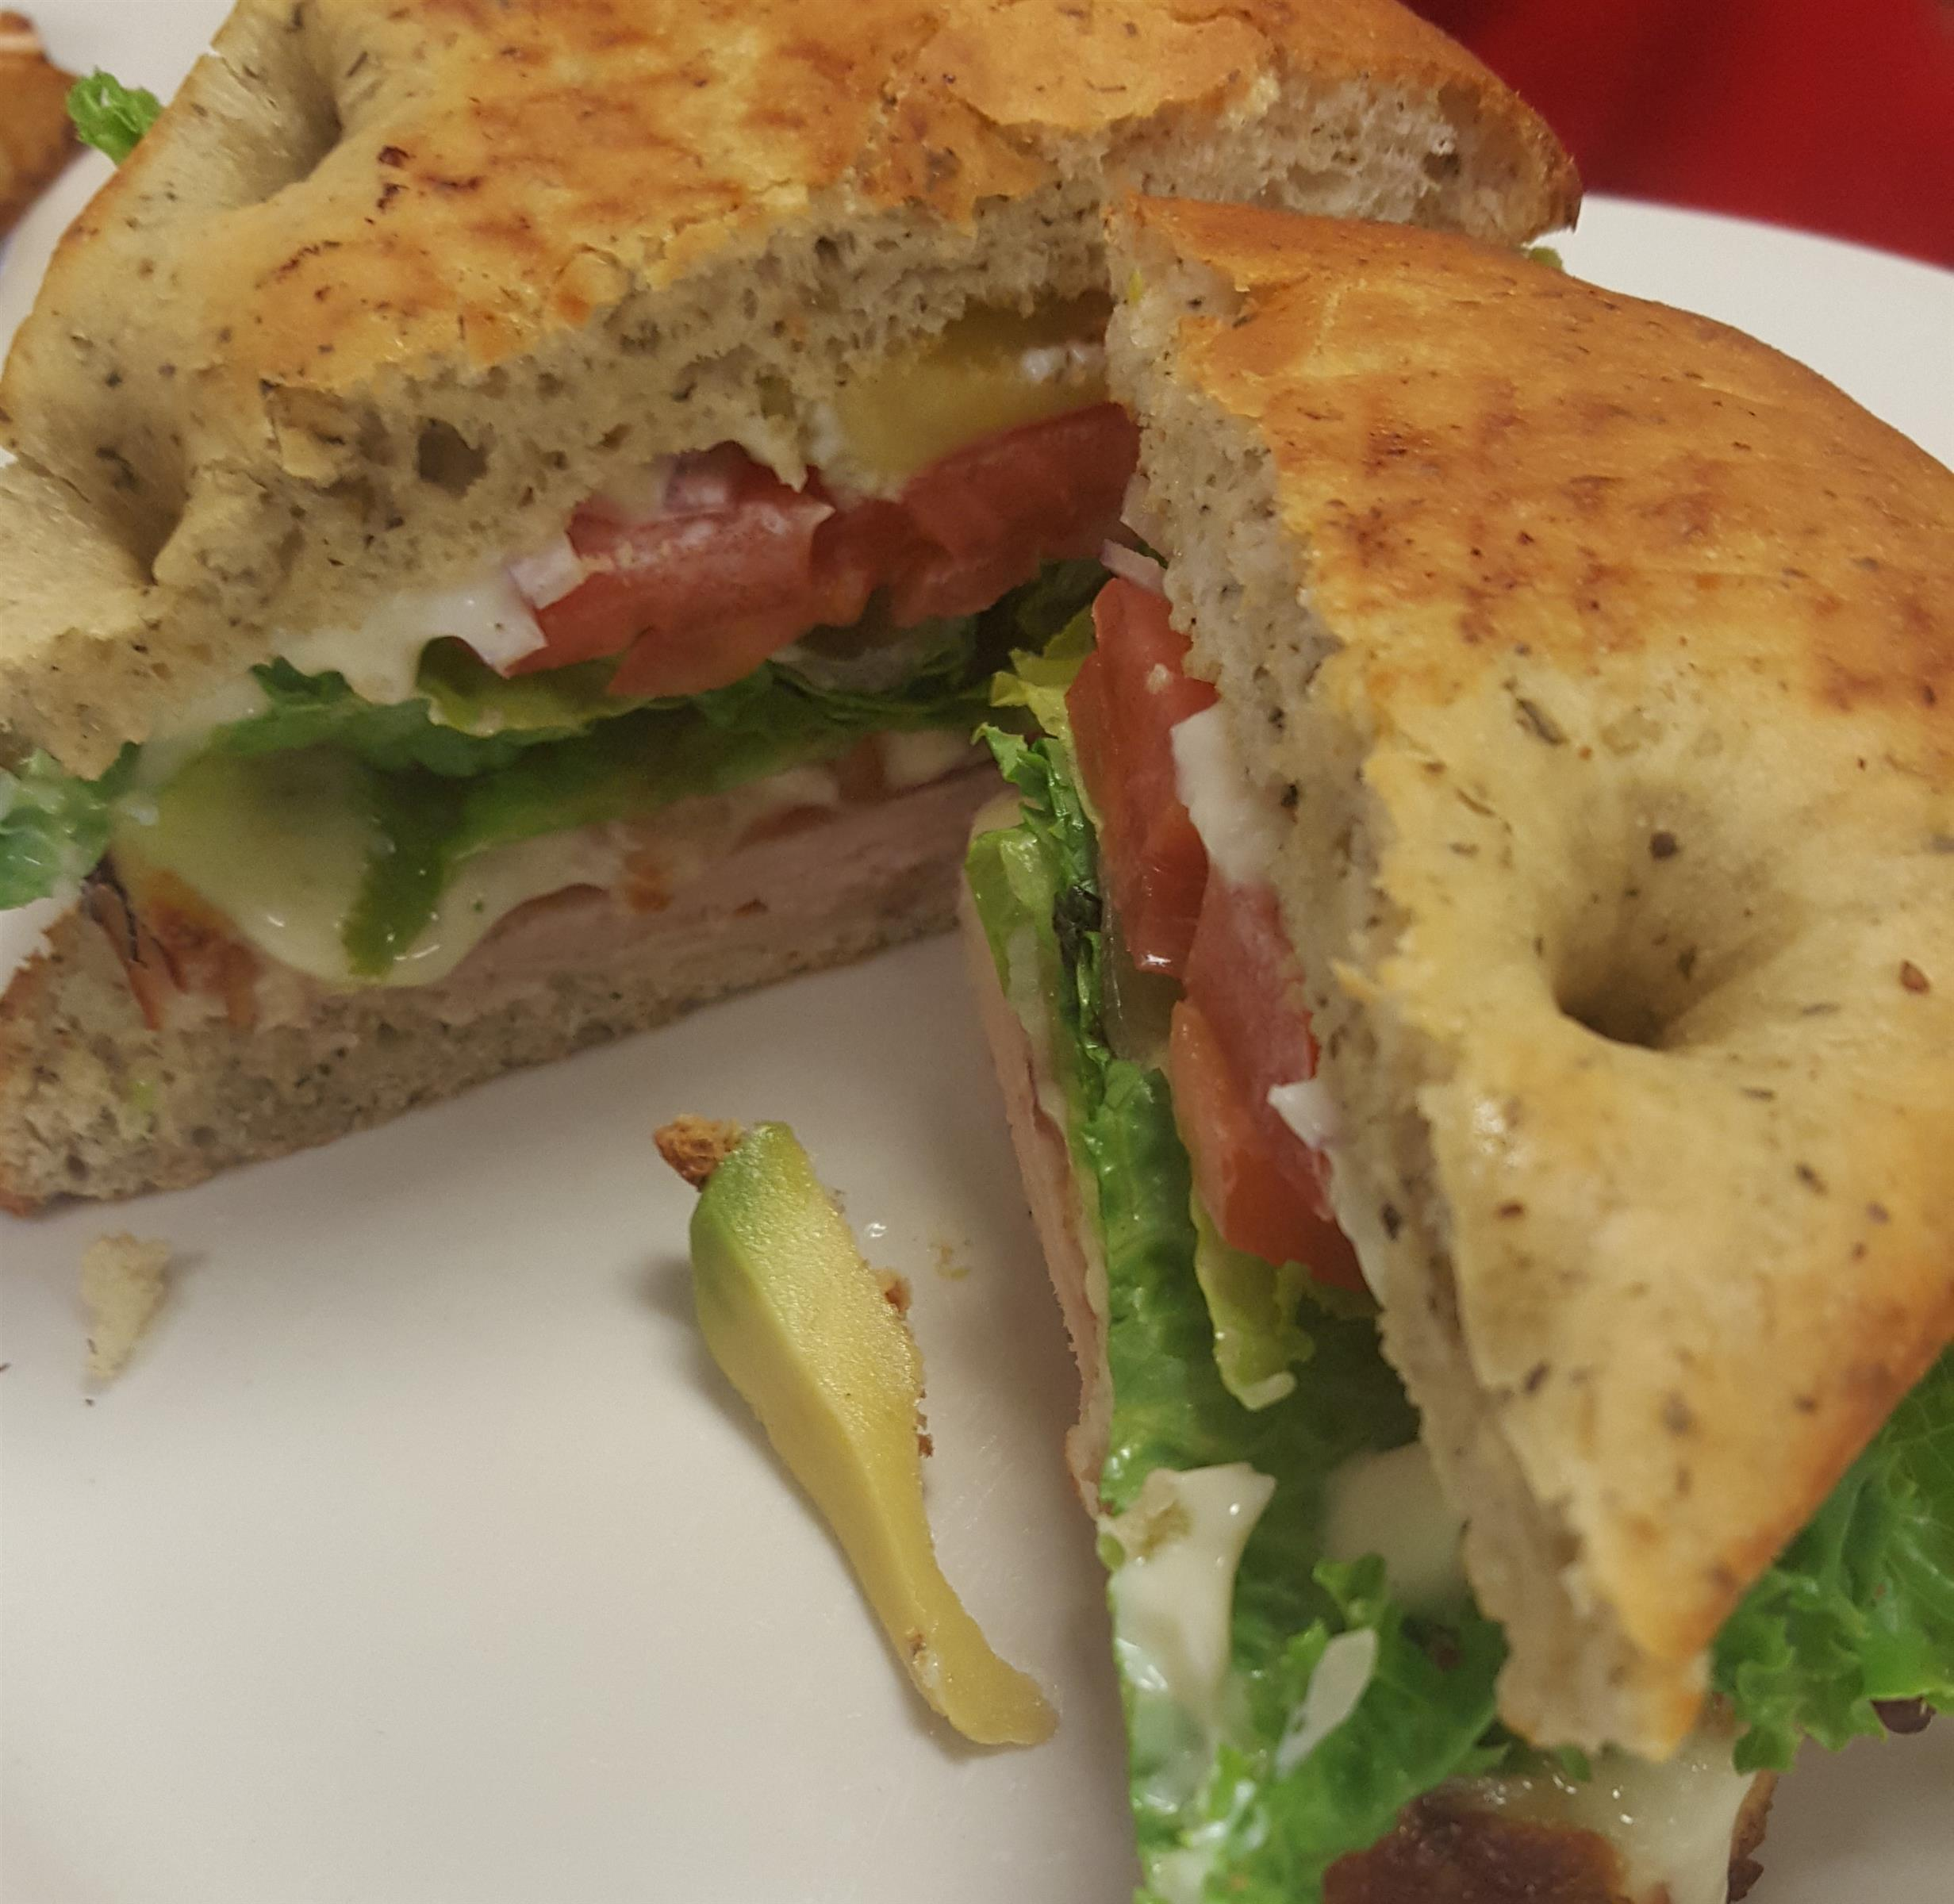 Bagel sandwich with tomato, lettuce, cheese